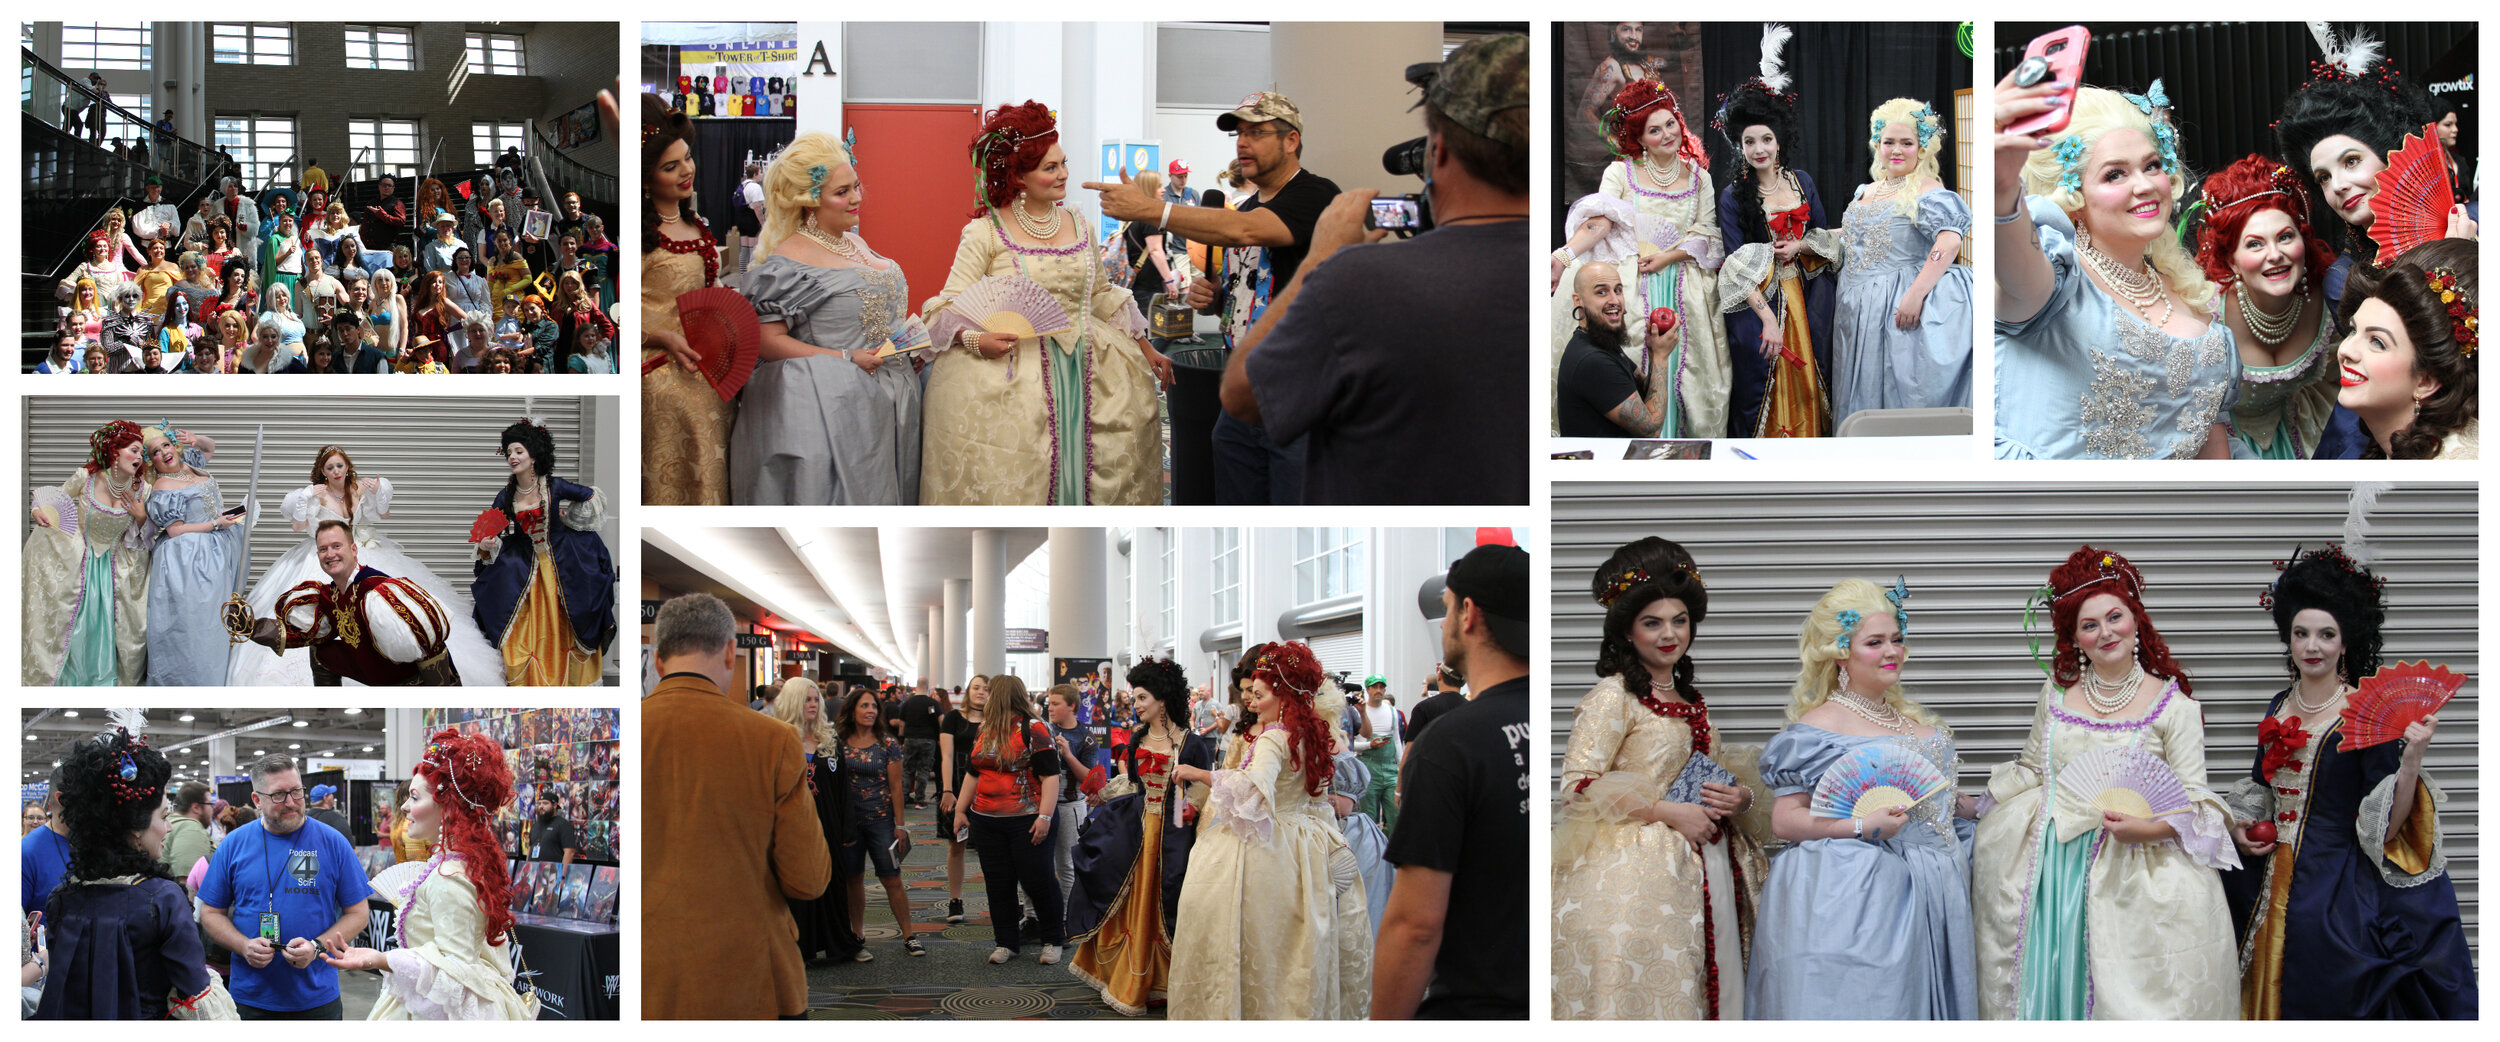 Saturday at FanX, top L-R: Disney cosplay group photos, being interviewed for a cable show, tattoos!, selfies had to happen, Finding other princesses and a prince, being interviewed again, and getting stopped for photos for an hour in the hall.